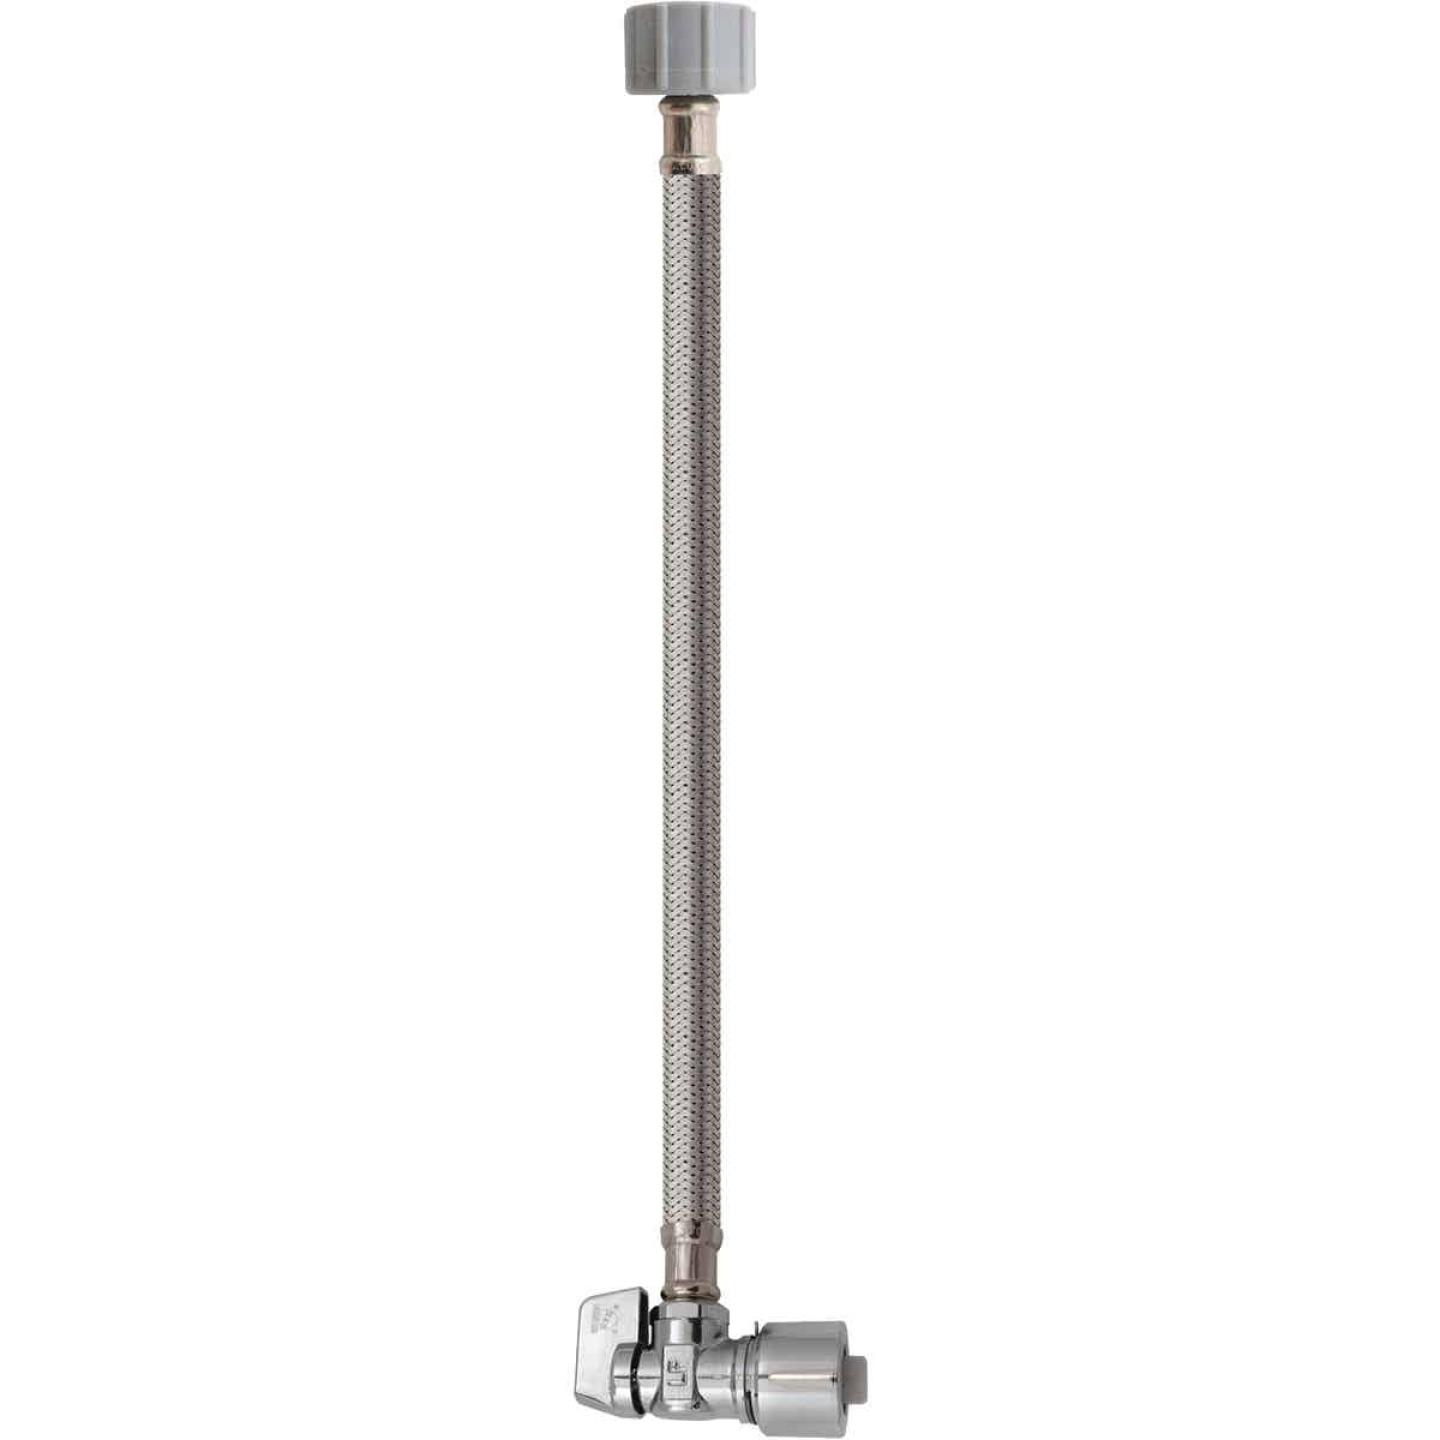 Keeney 5/8 In. x 20 In. Stainless Steel Quick Lock Toilet Supply Tube with Angled Quarter Turn Valve Image 1